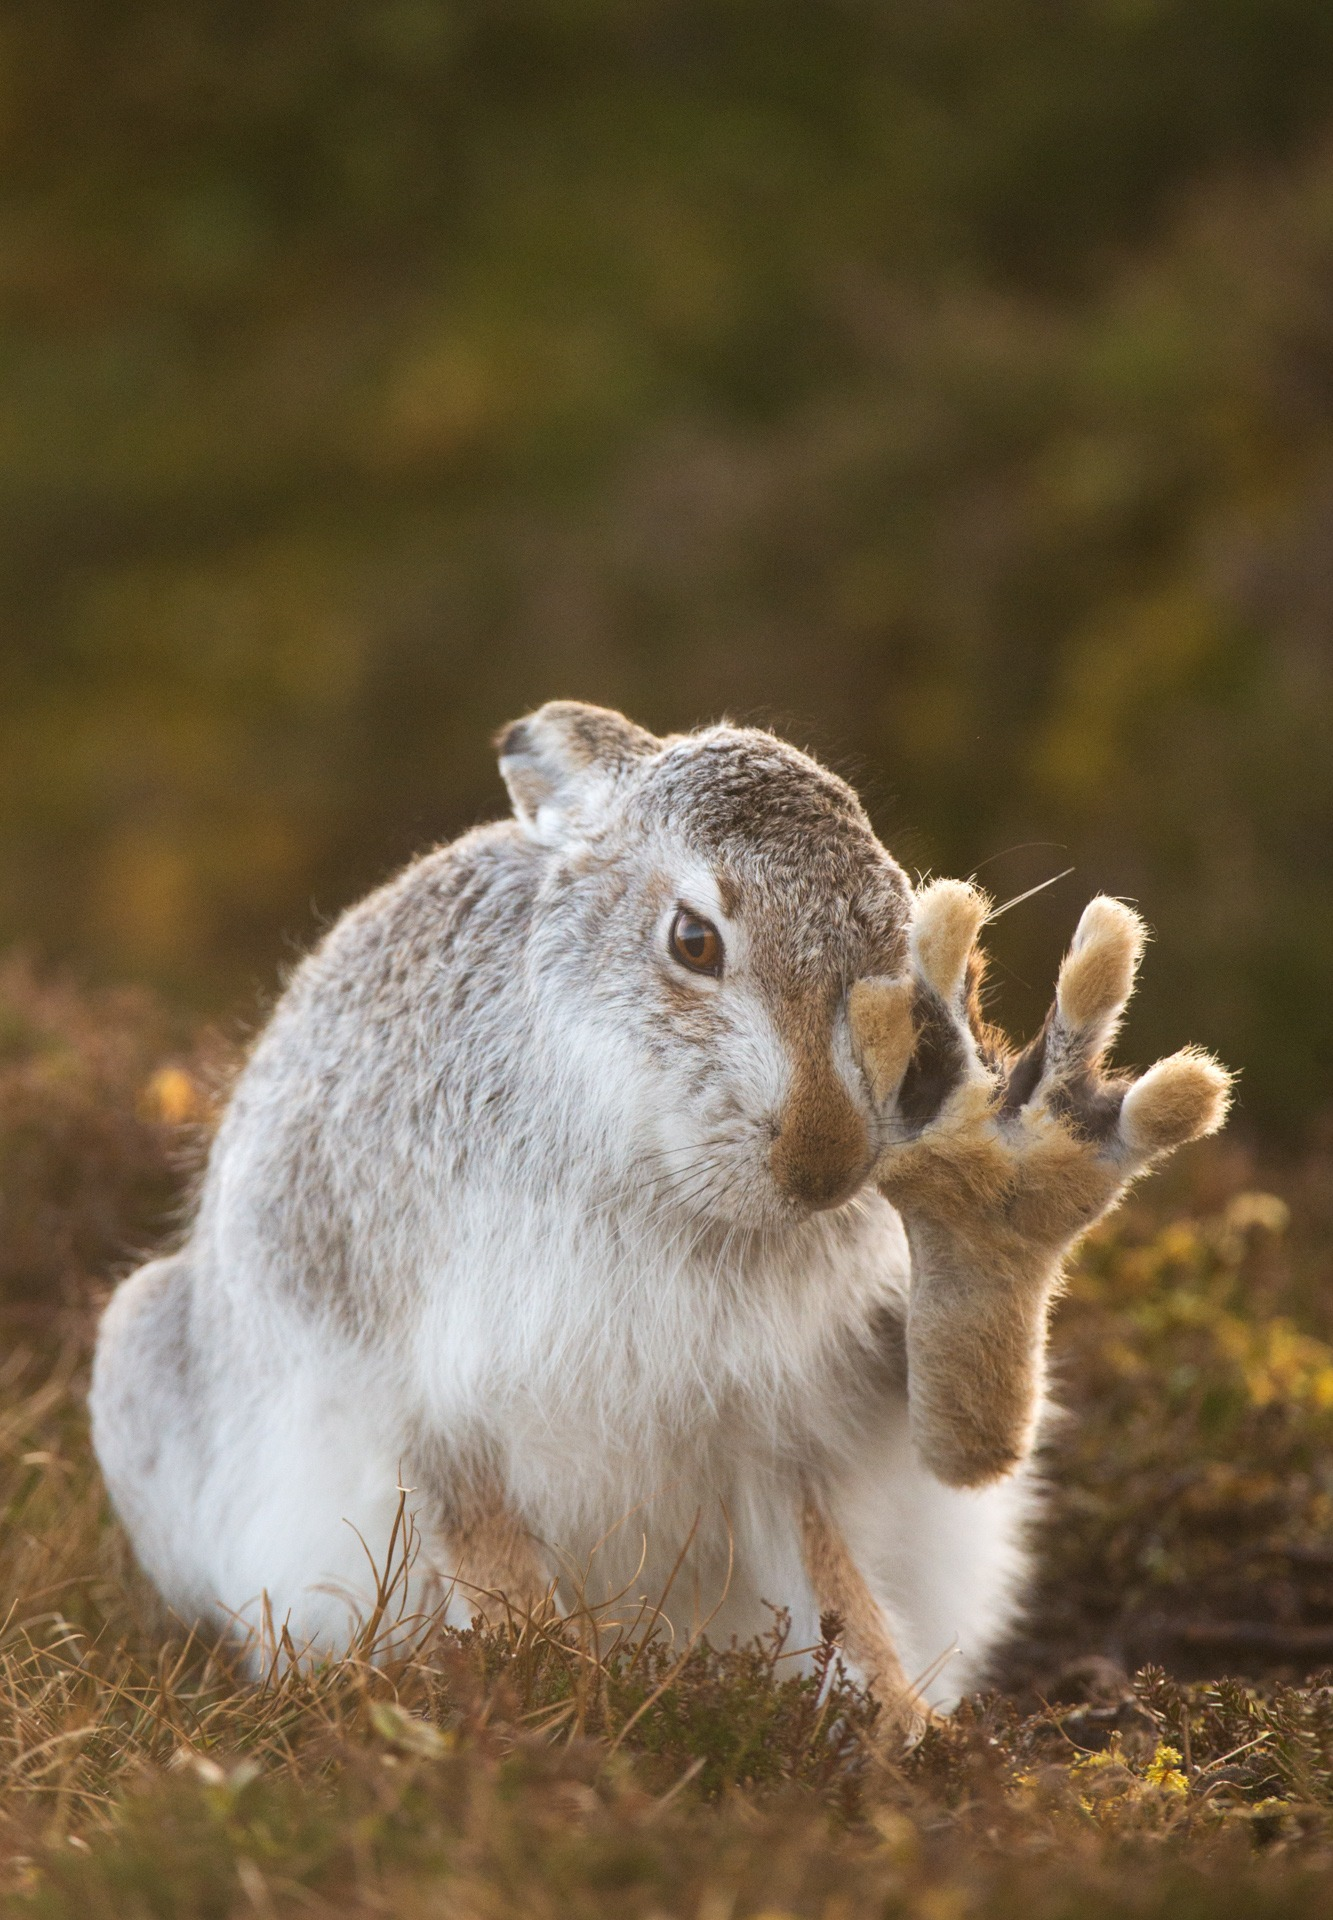 C9_3 Andrew Parkinson High five Nature Photographer of the Year 2017